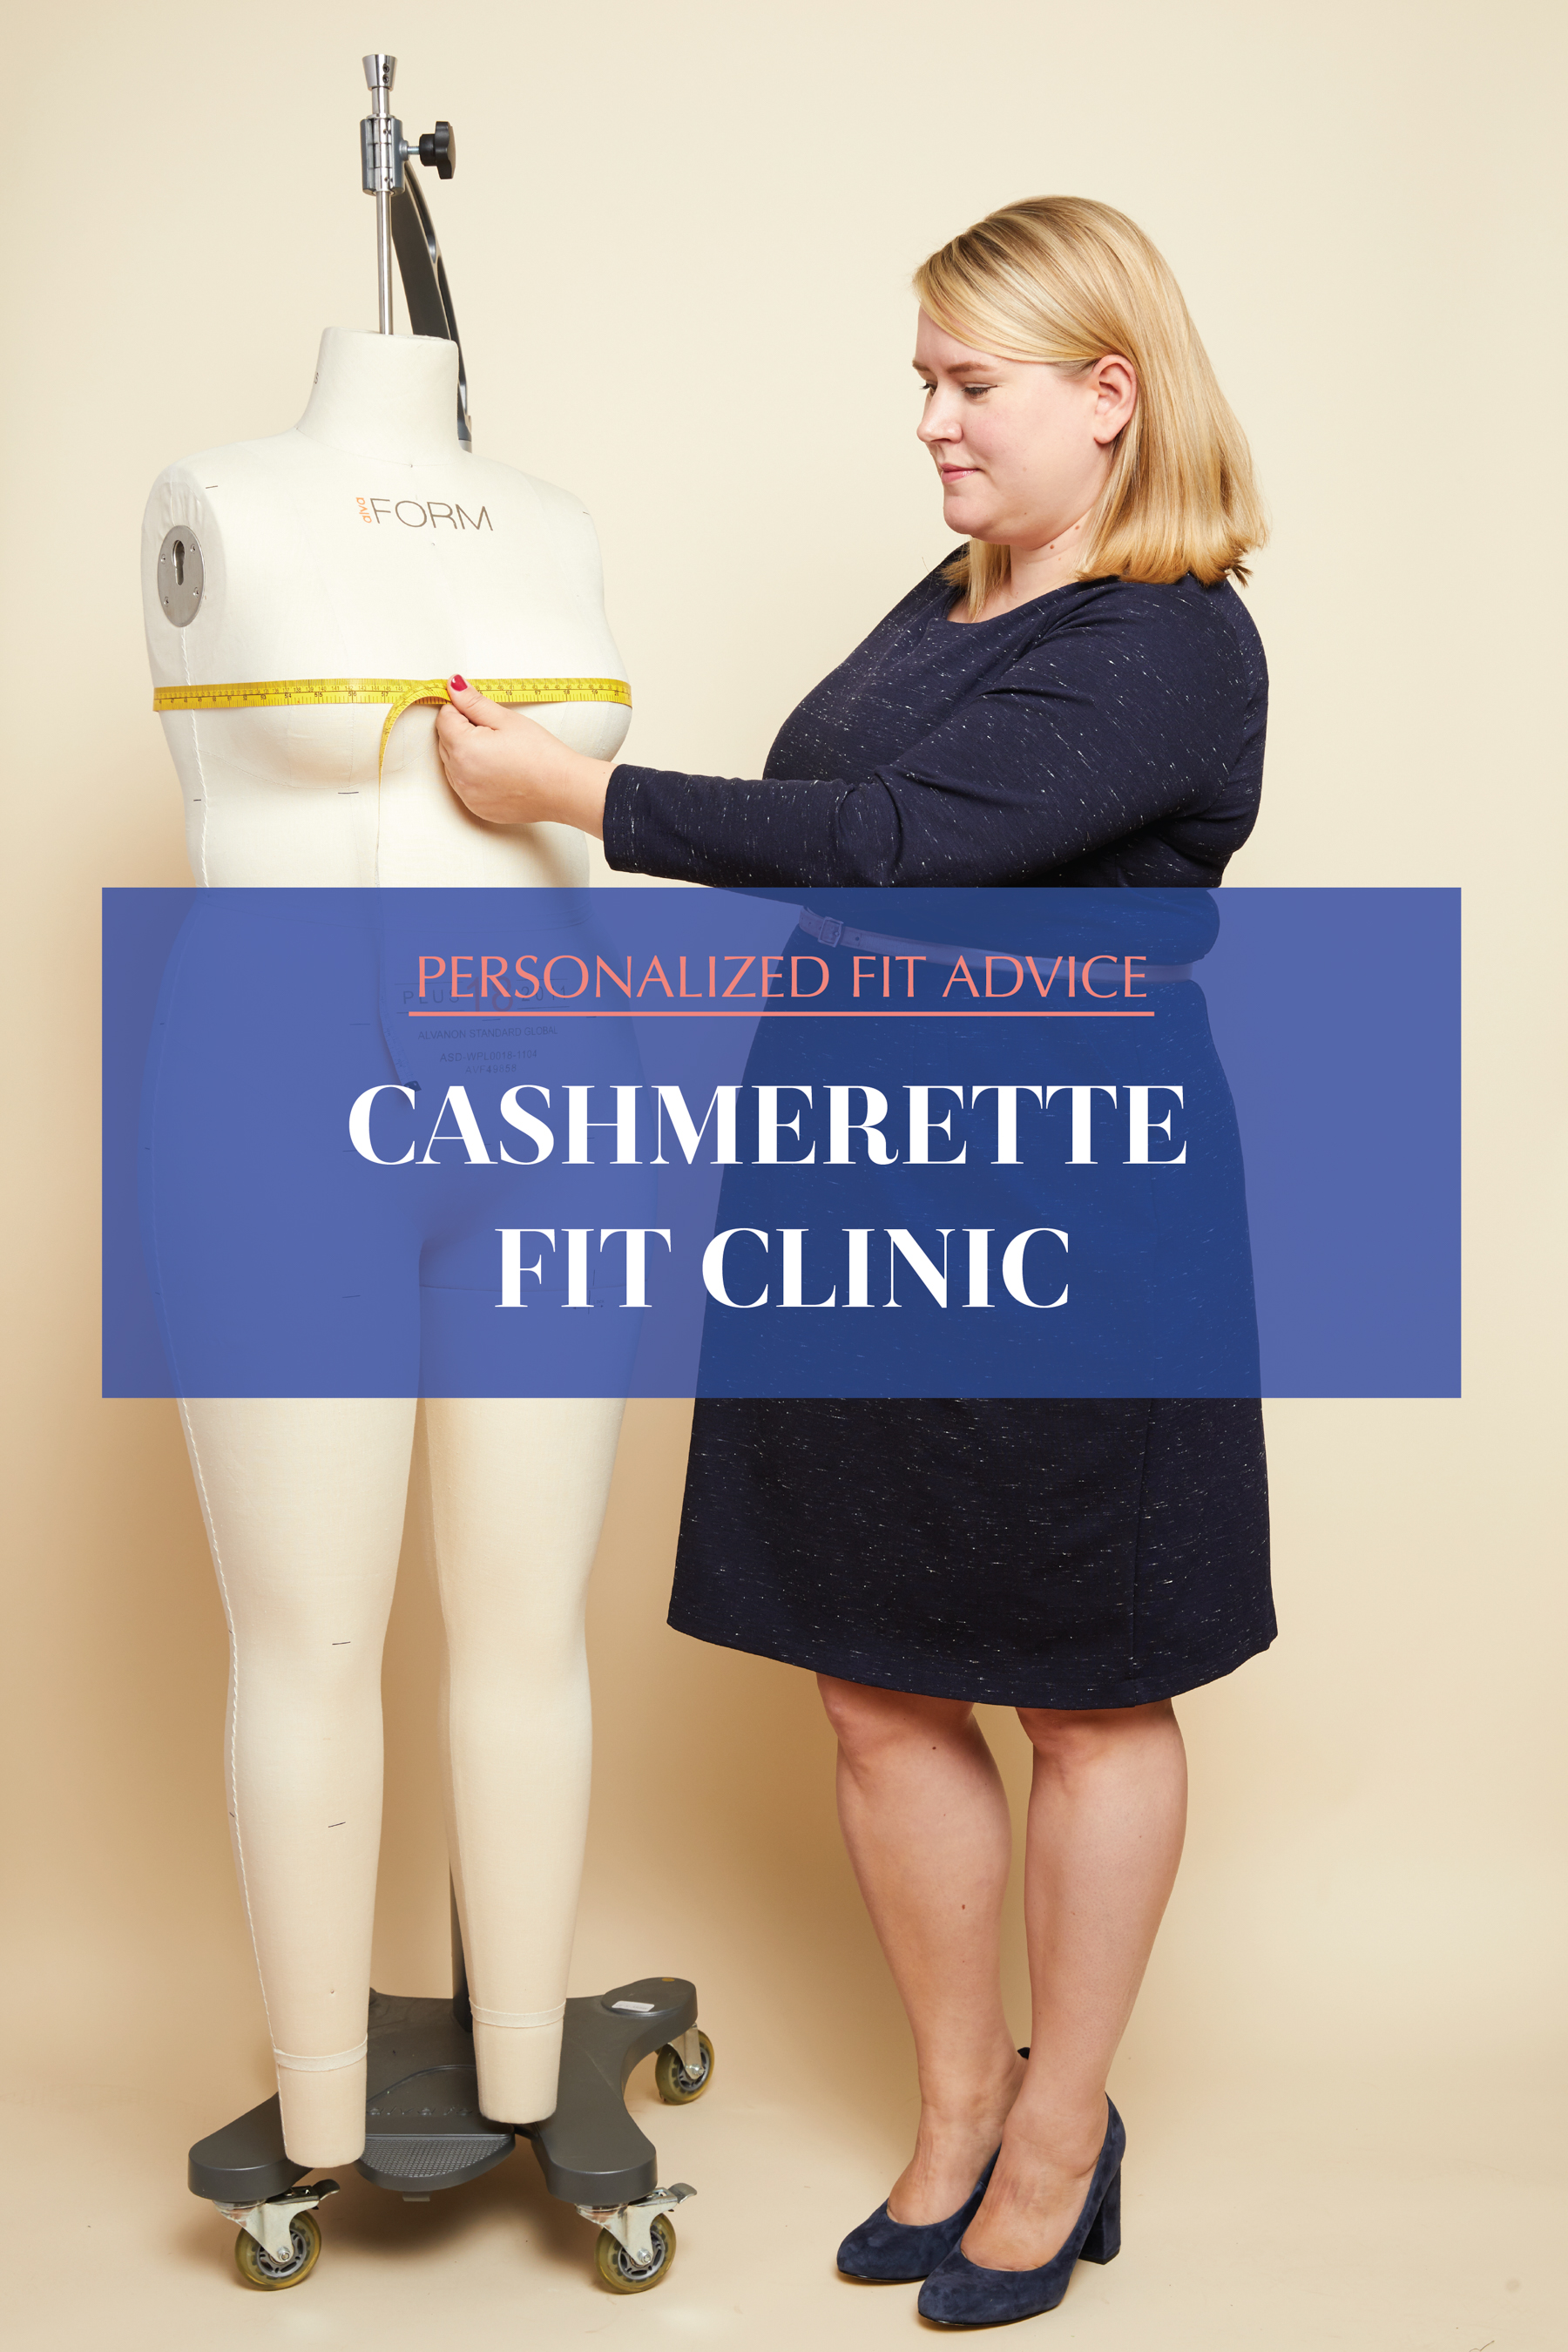 Cashmerette Fit Clinic